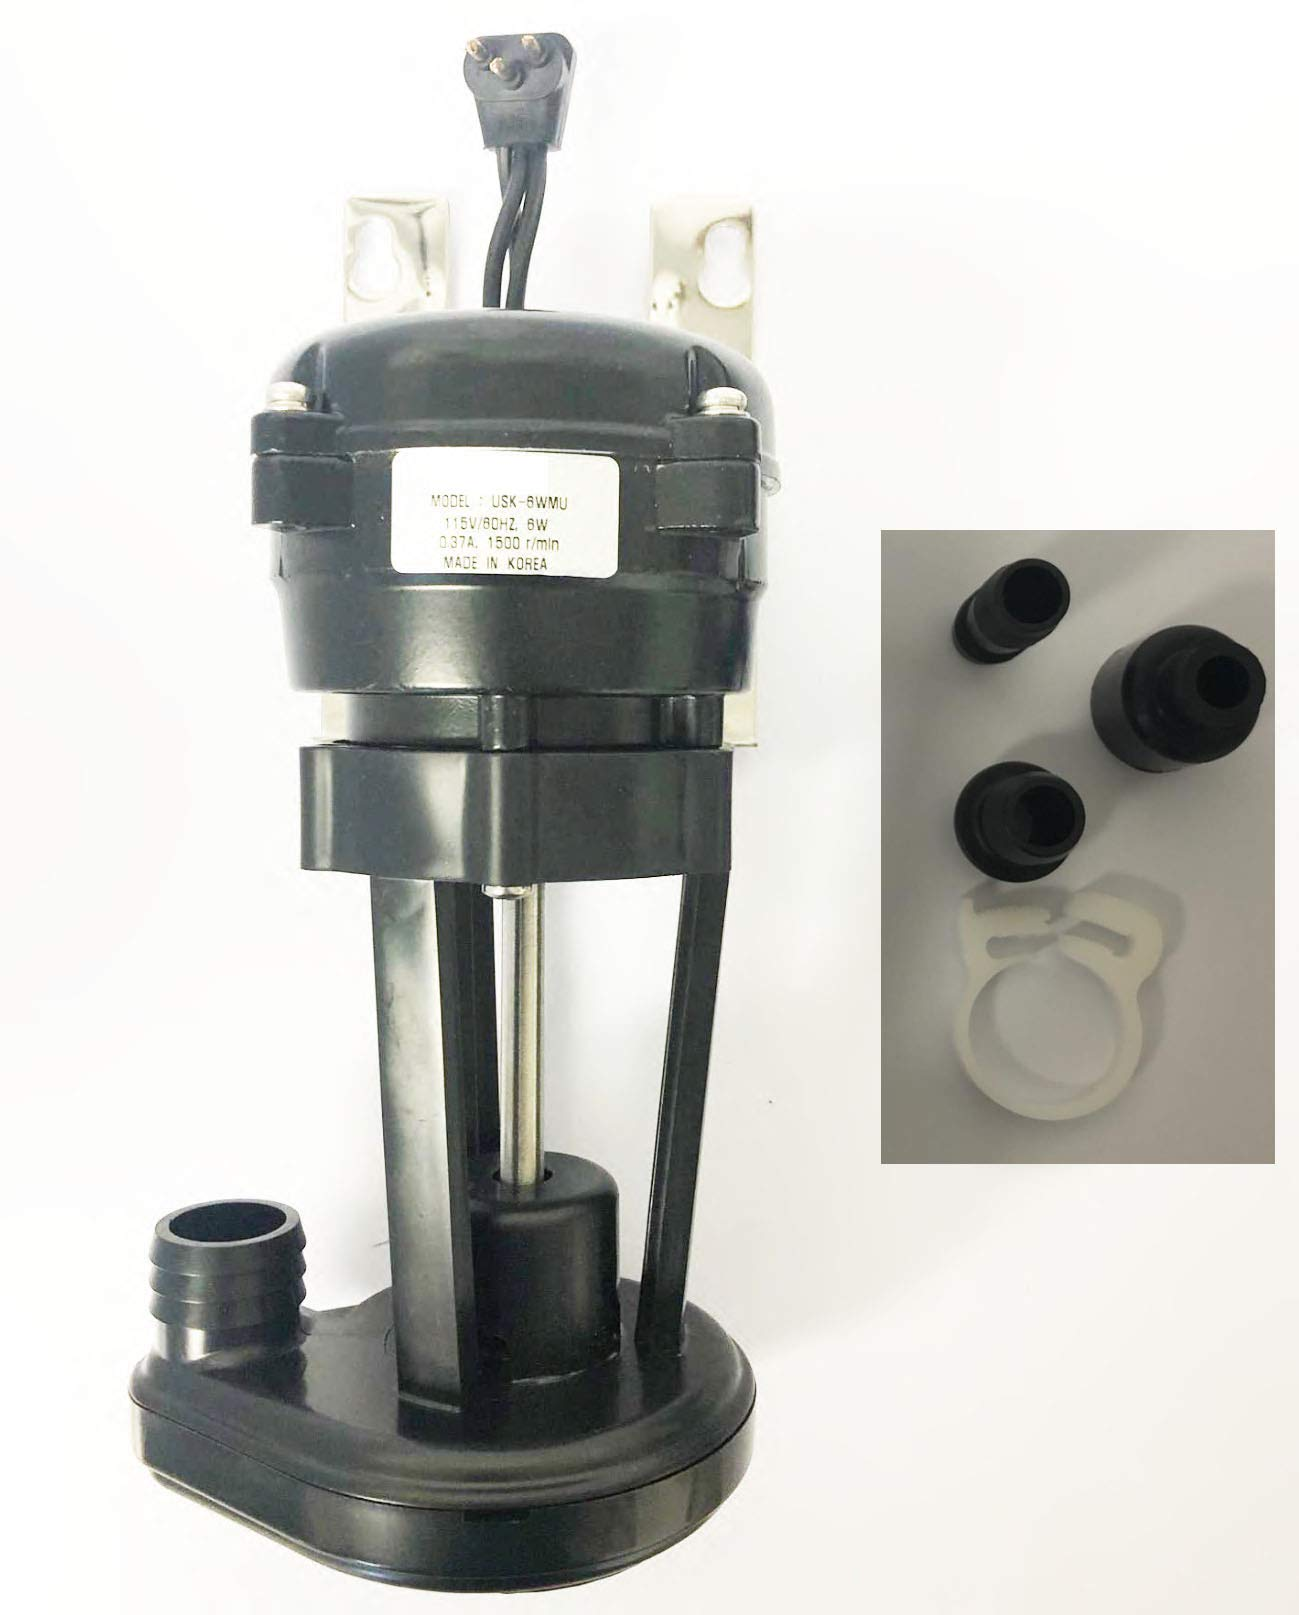 coldsupply New Compatible Manitowoc 7623063 Water Pump for Ice Machine 1 Year Replacement Warranty Accessories Included by coldsupply